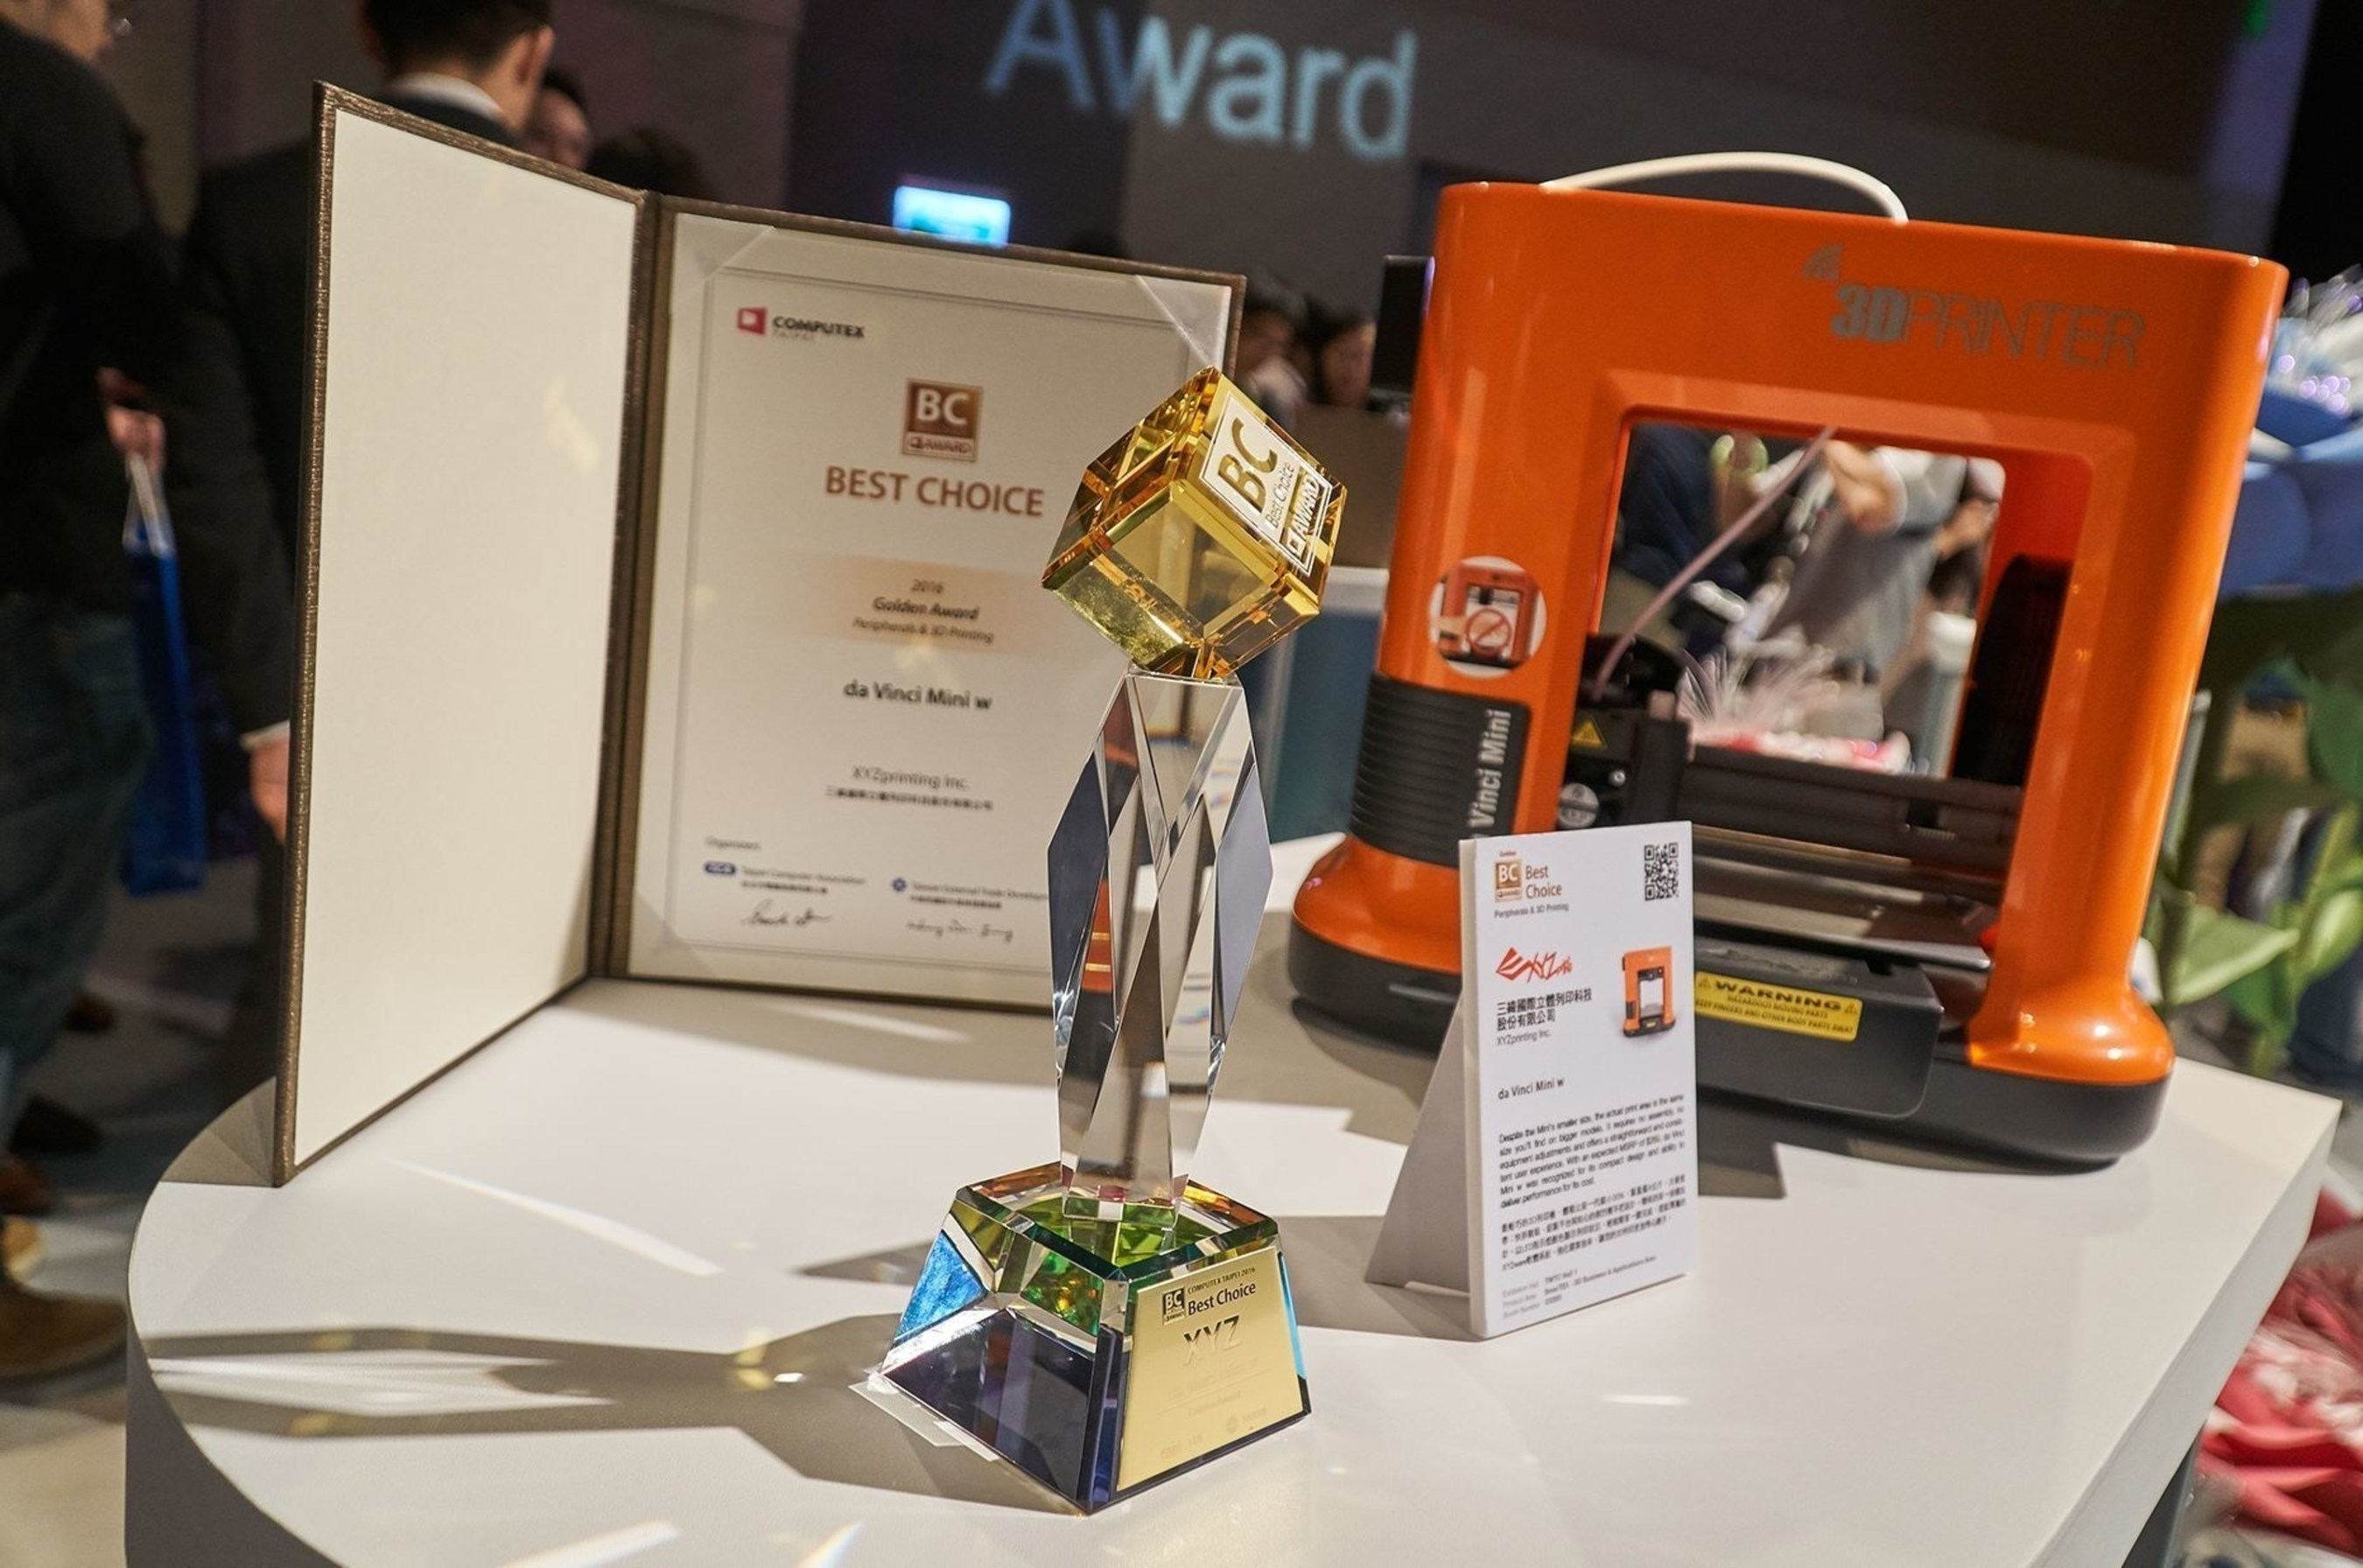 XYZprinting Announces Newly Expanded 3D Printing Product Suite on the Heels of Winning Best Choice Golden Award at COMPUTEX Taipei